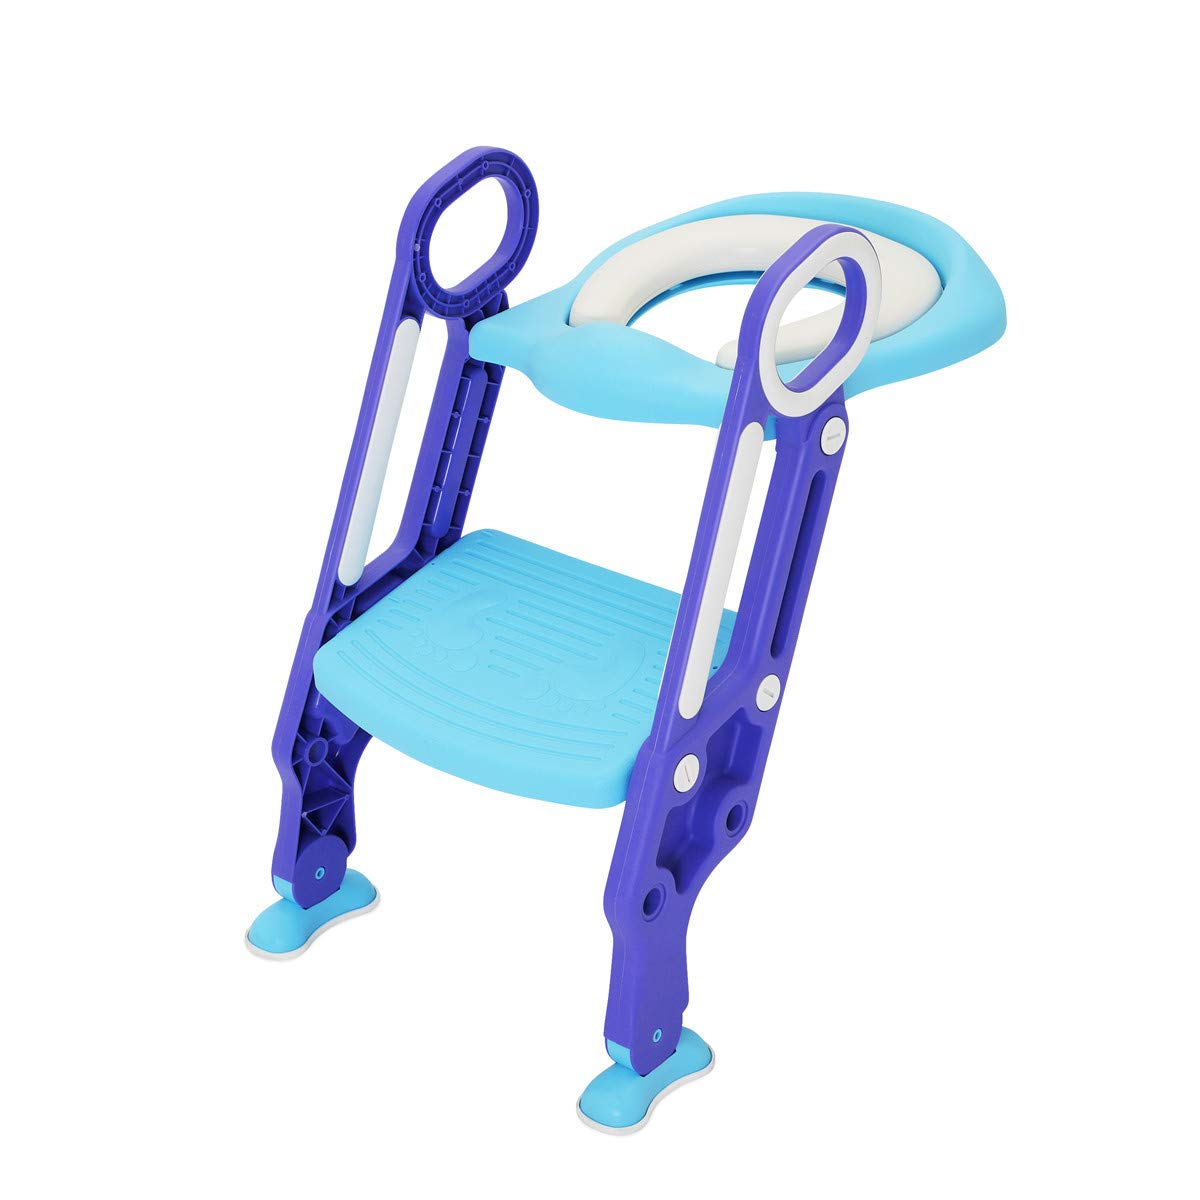 Children Potty Training Seat with Ladder - CrazyLynX Adjustable Baby Toilet Trainer Seat with Step Stool Ladder and Soft Toilet Seat, Sturdy & Non-Slip, for Todderls Baby Children (Purple & Blue)